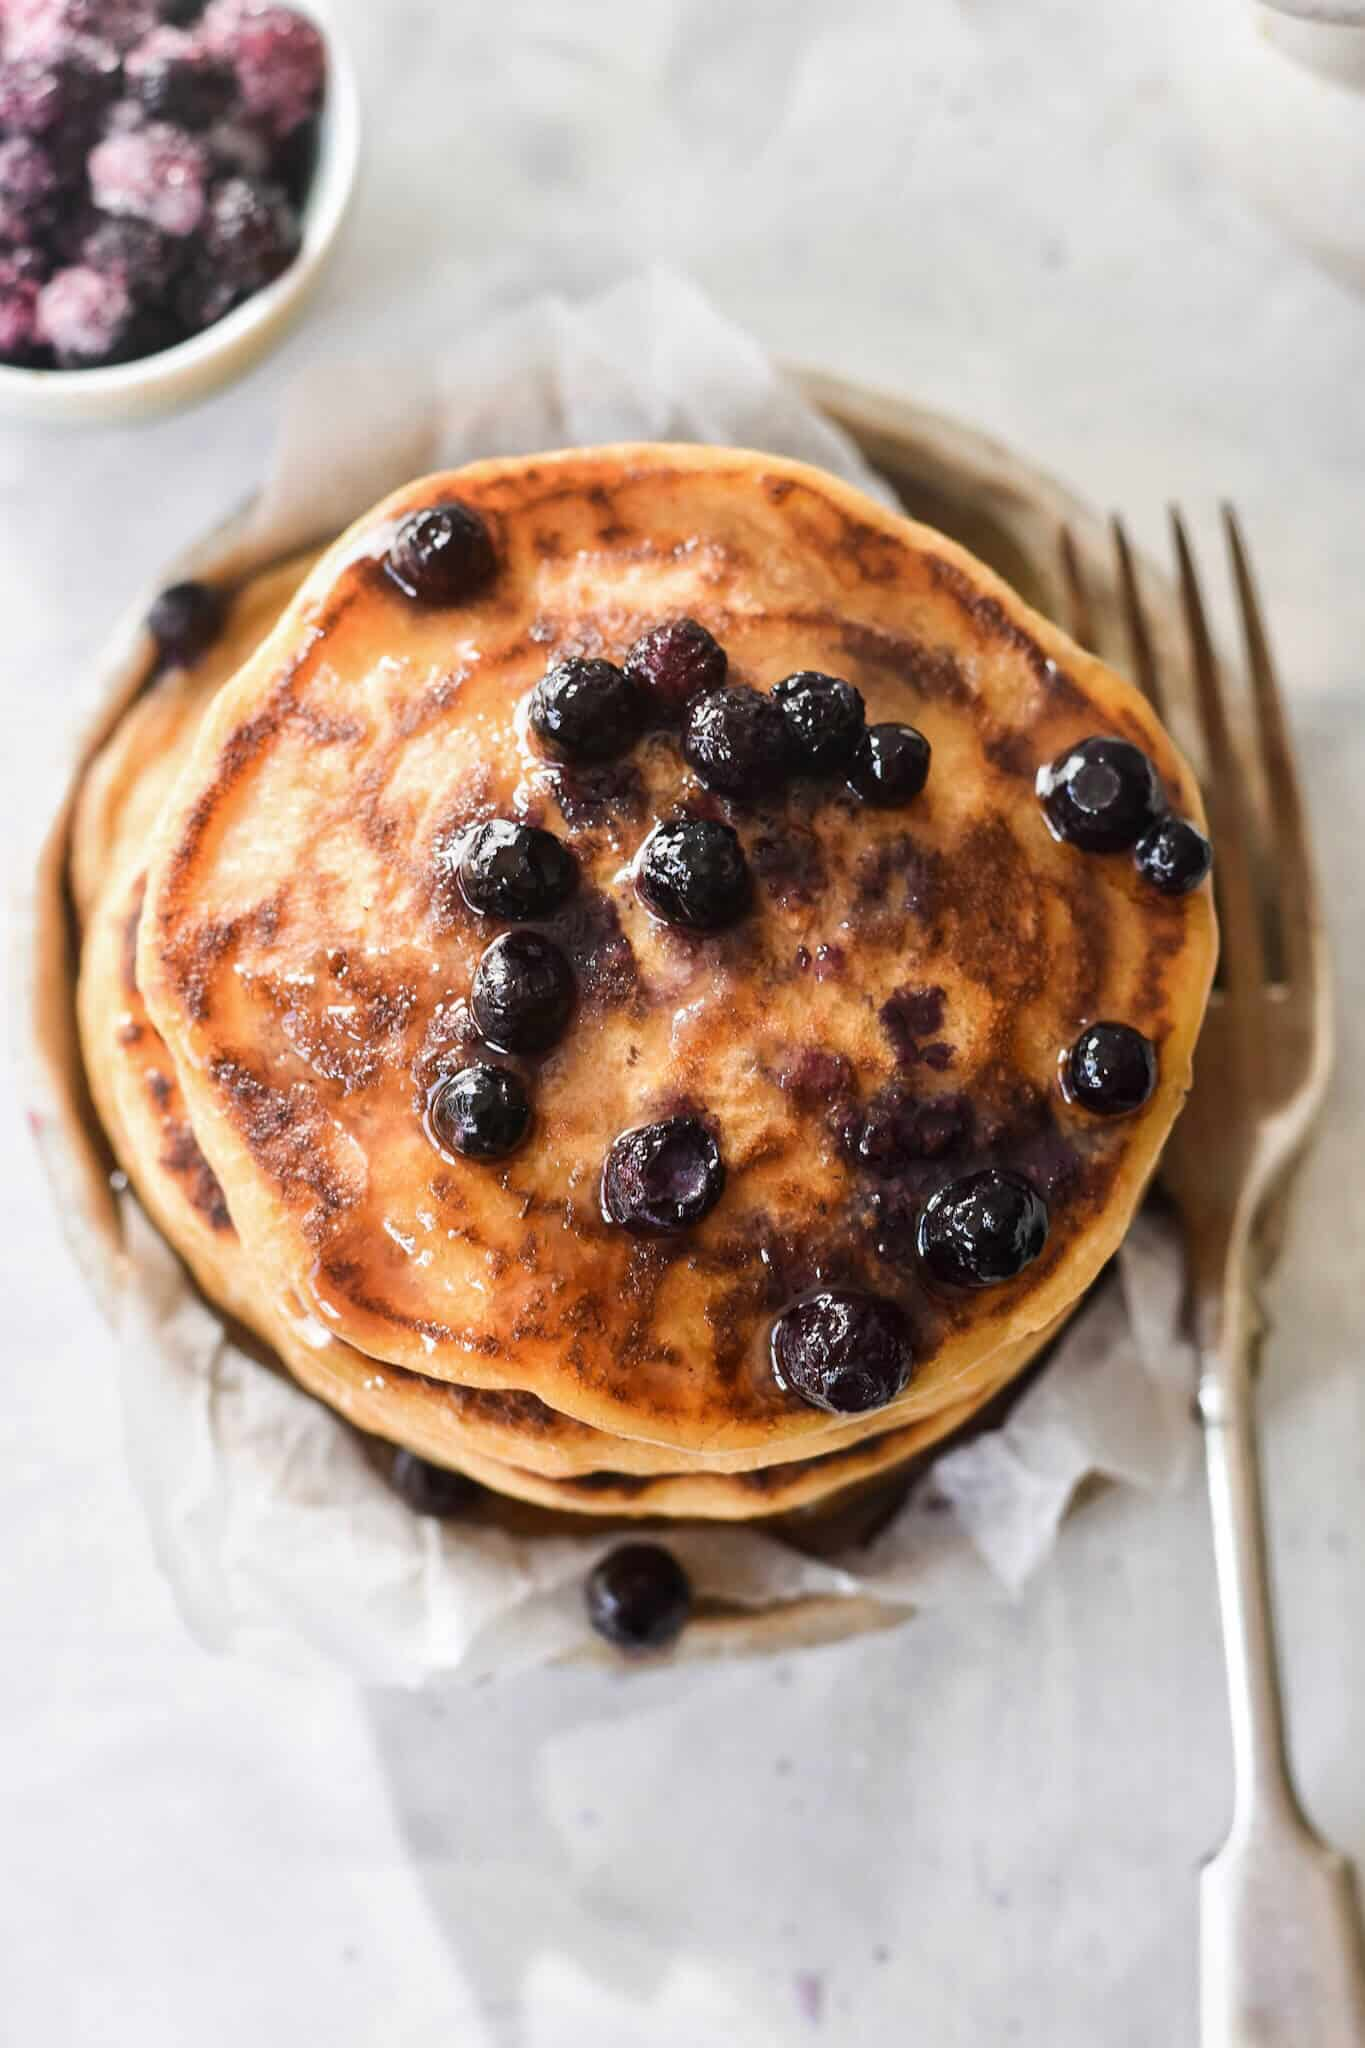 sweet potato pancakes topped with blueberries